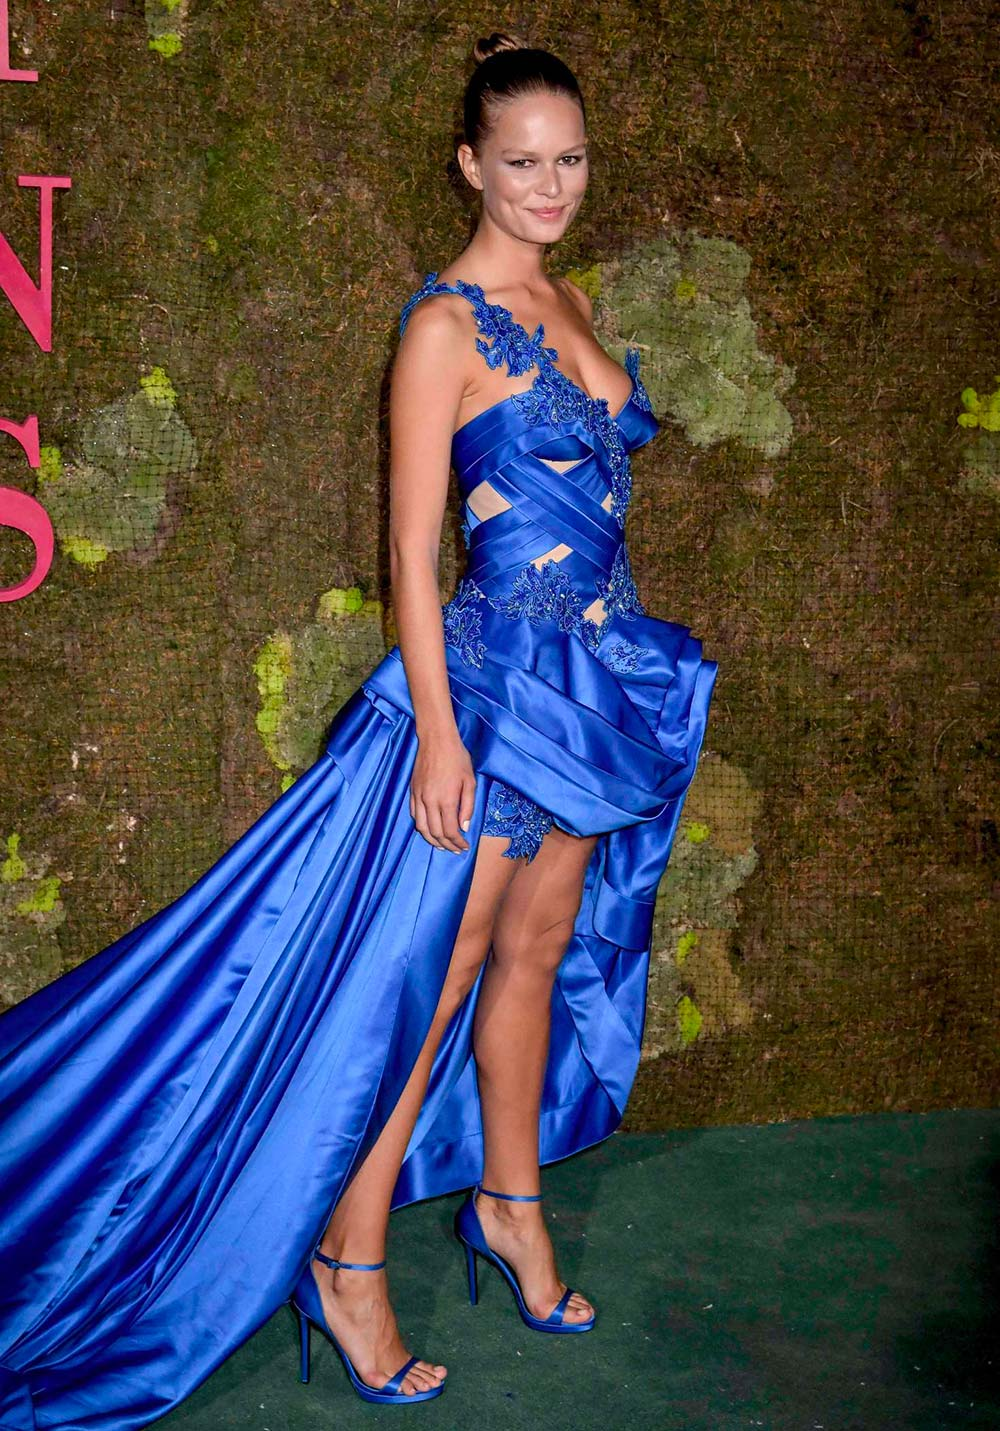 Green Carpet Fashion Awards 2018 - Anna Ewers - Hair & Makeup Massimo Serini Team